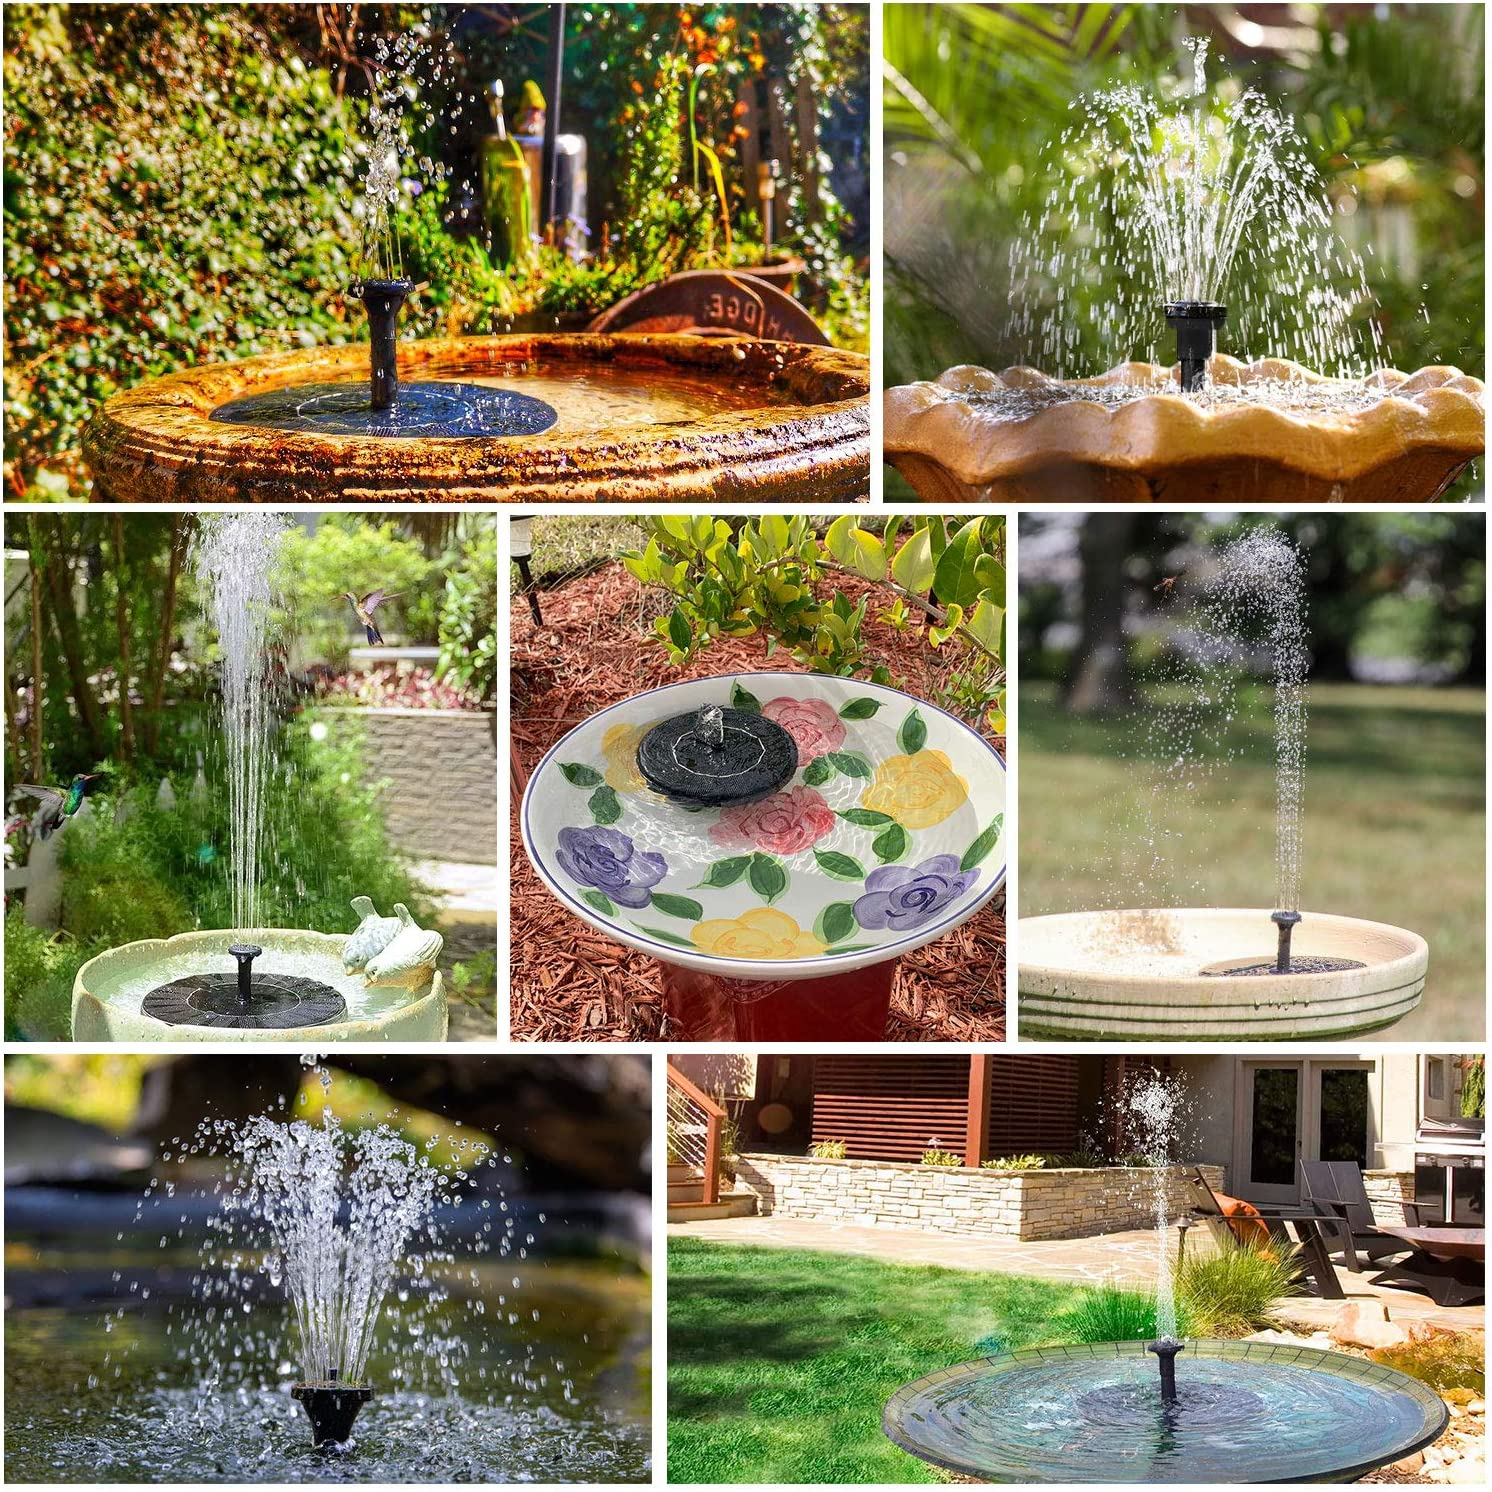 Swimming Pool for Bird Bath 6 Nozzle AISITIN Solar Water Fountain 3.5W Floating Solar Fountain Pump with Backup Battery Garden Decoration Pond